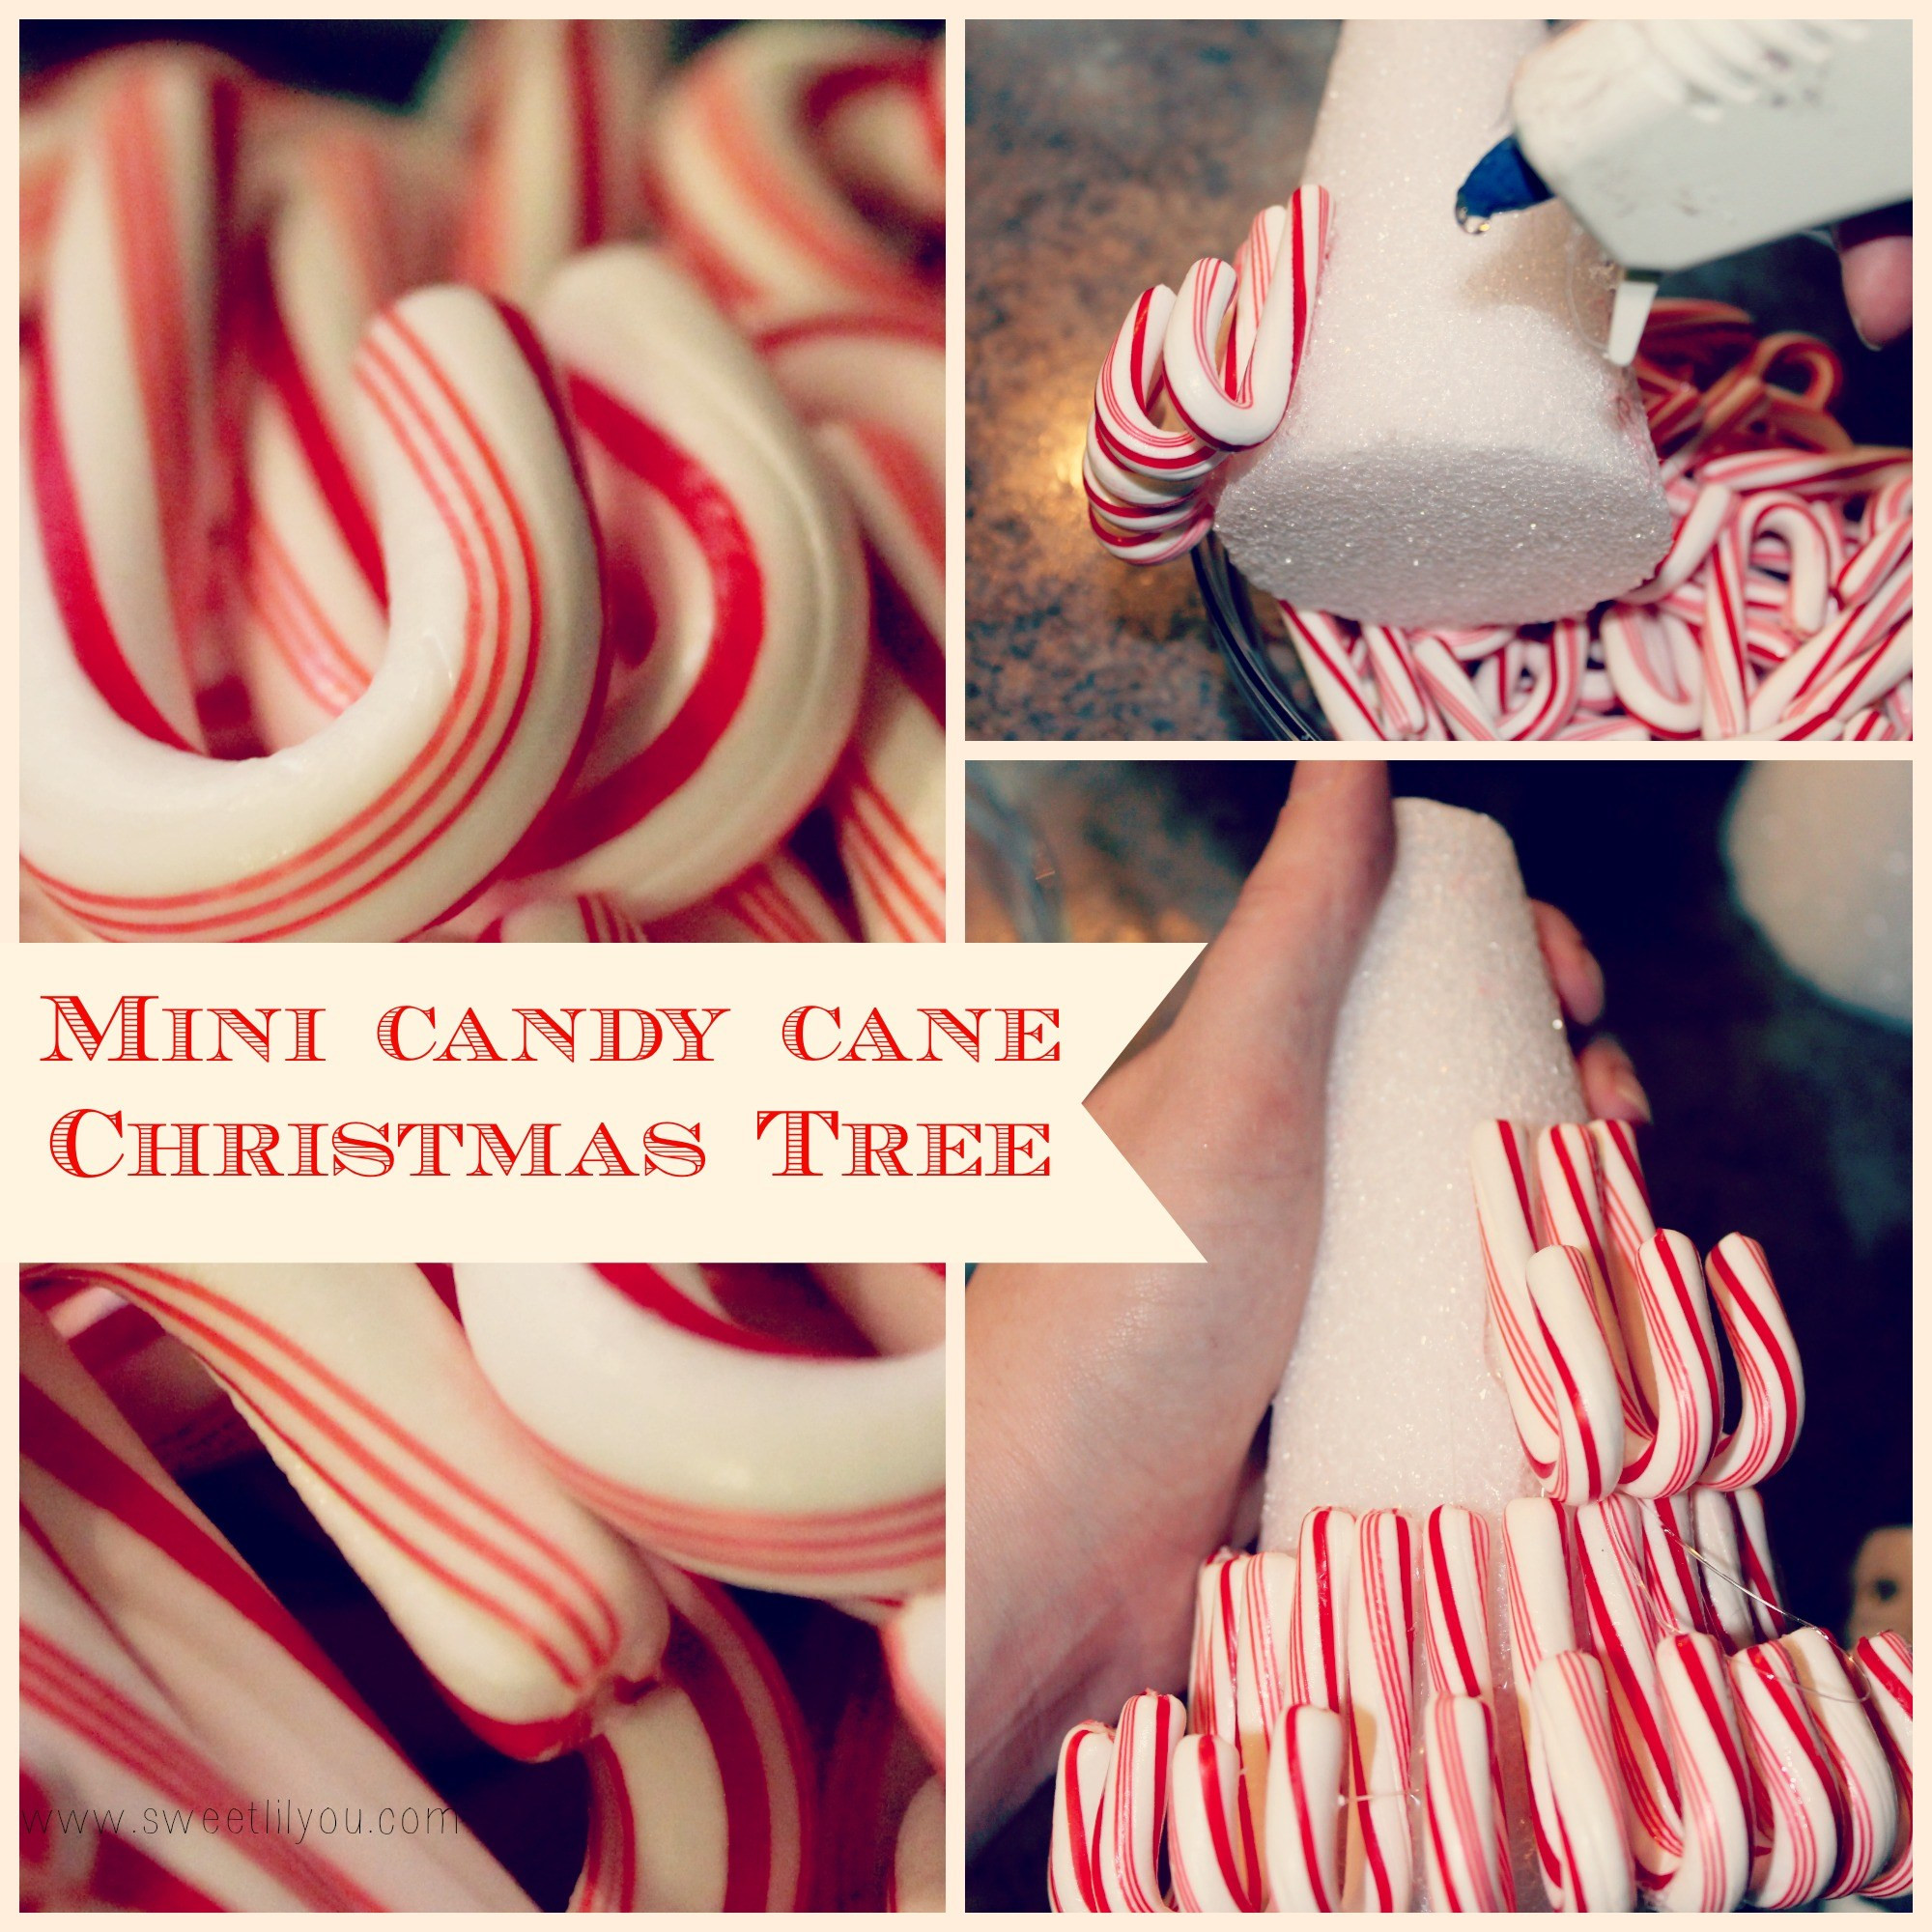 Candy Cane Christmas Shop  Holiday Entertaining & Decorating with Price Chopper